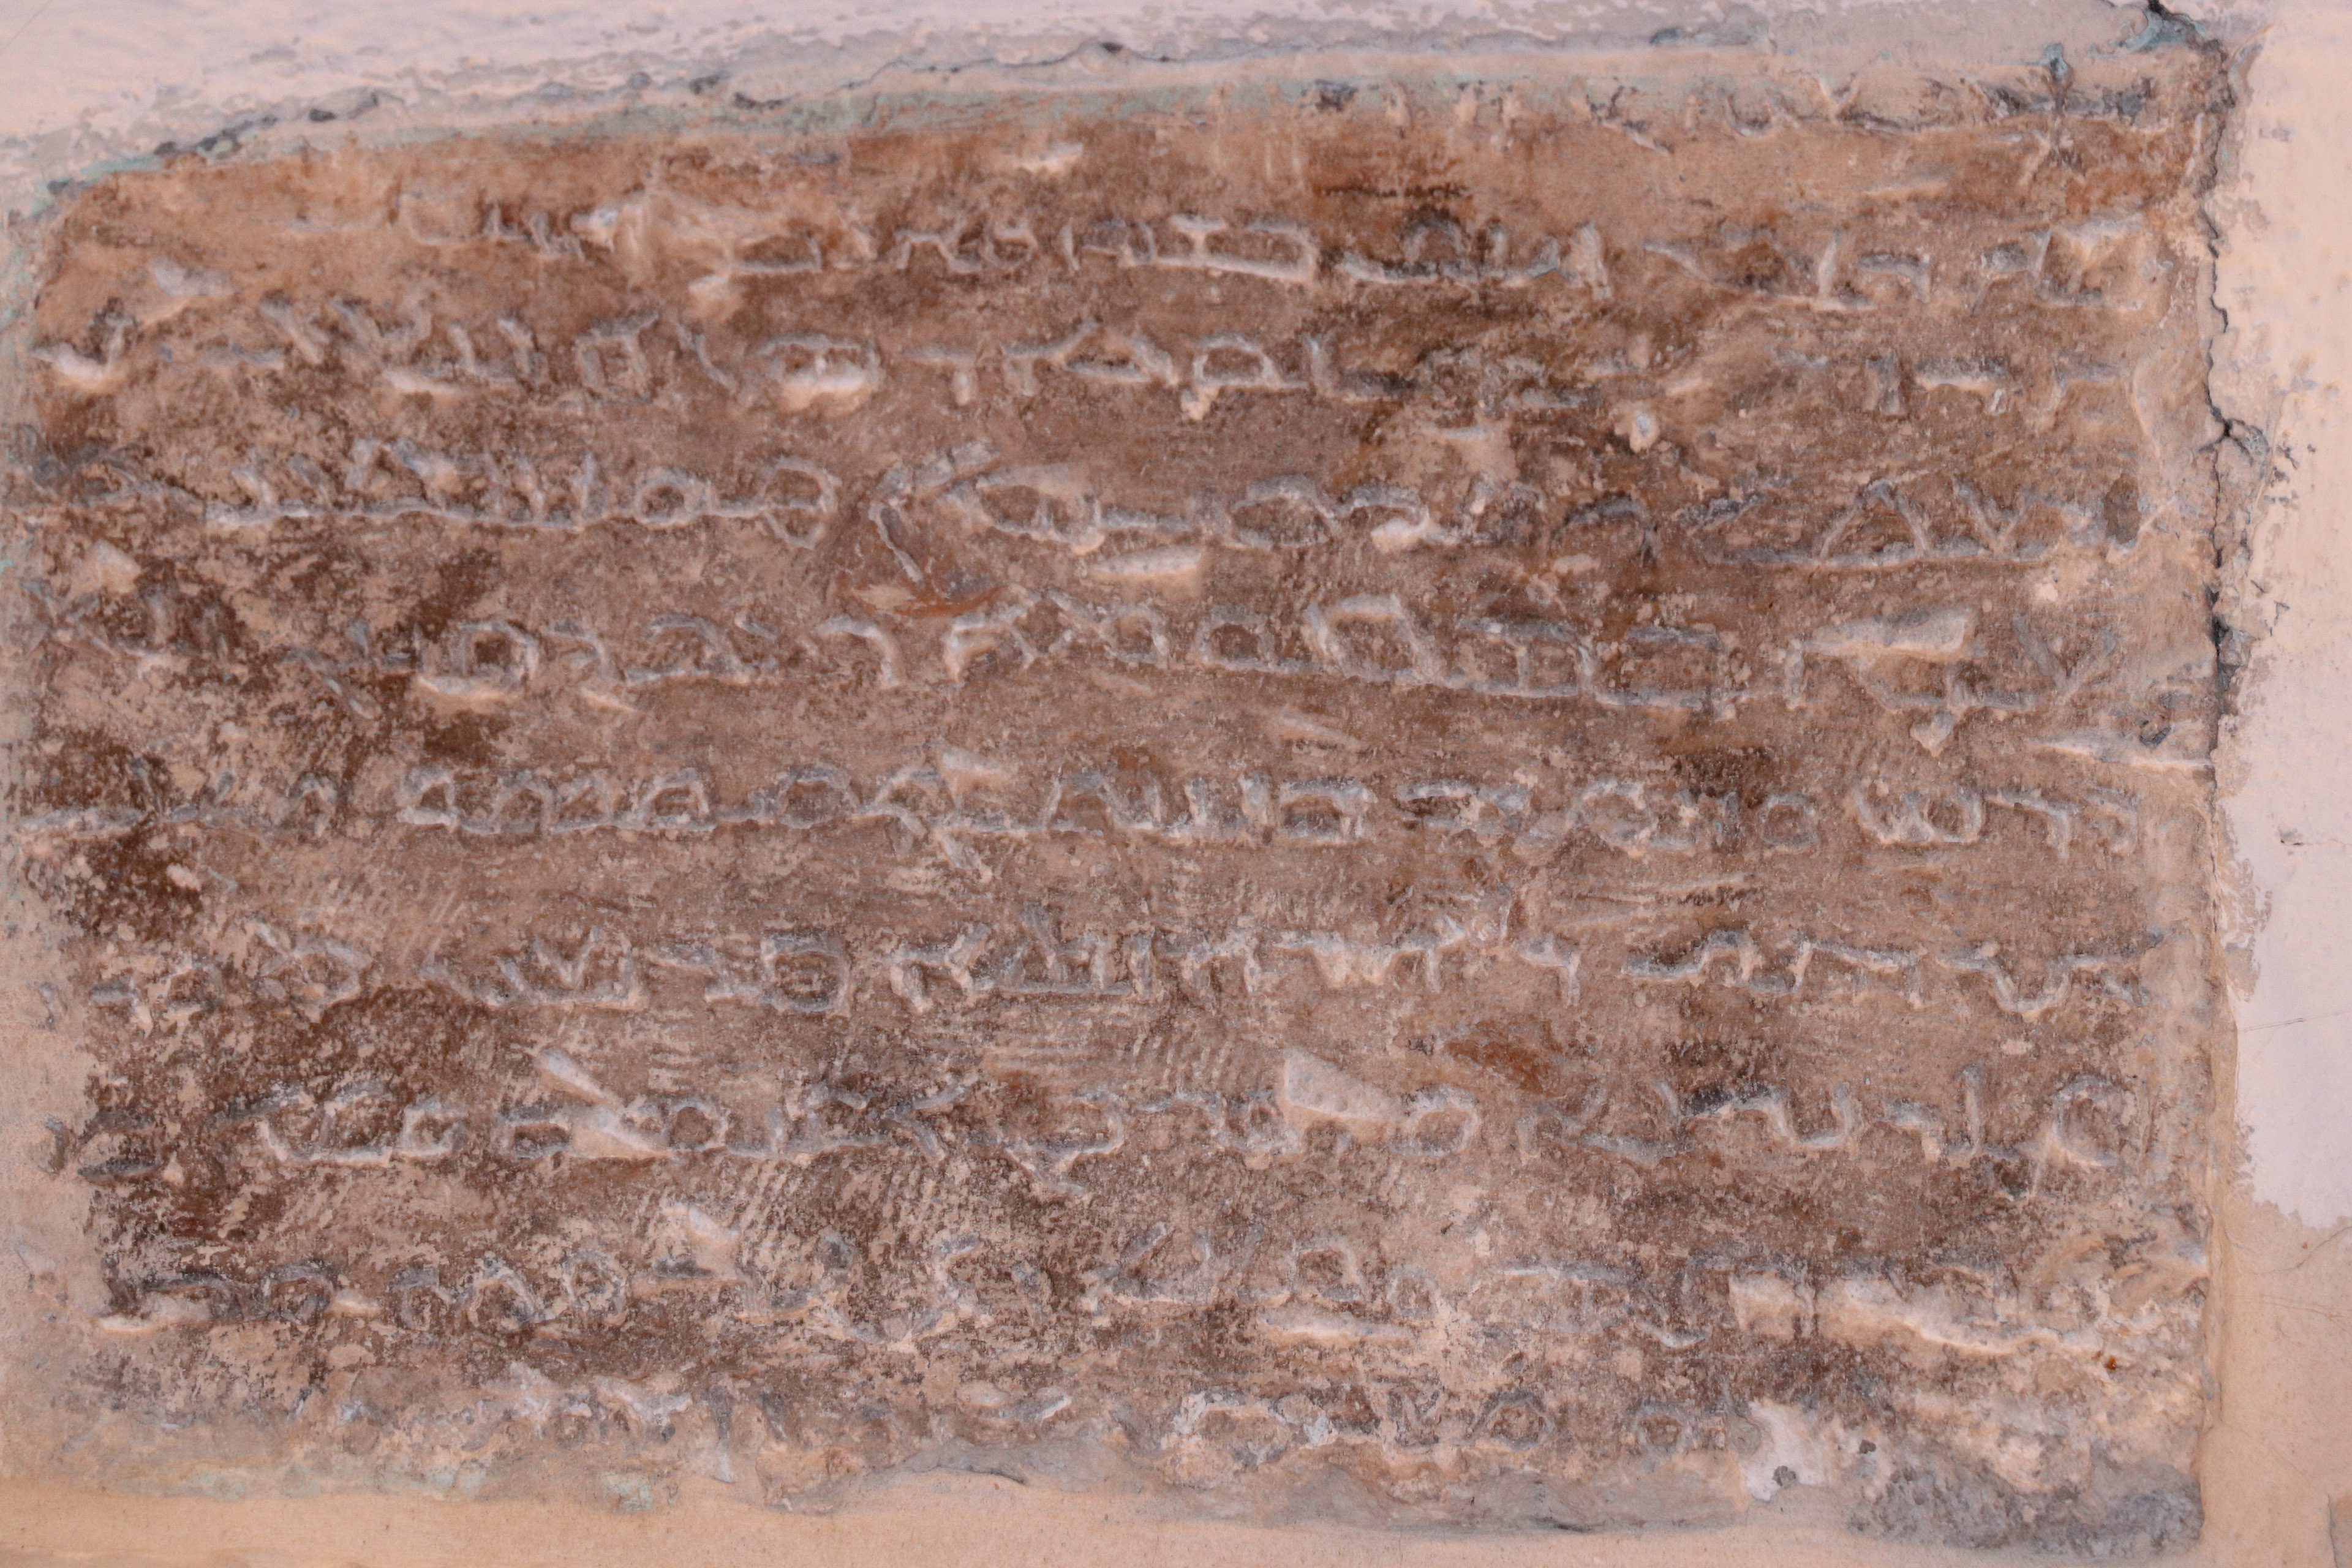 Details of a Syriac inscription on the walls of the church of al-Aboudiya - by Stephanie Saldaña